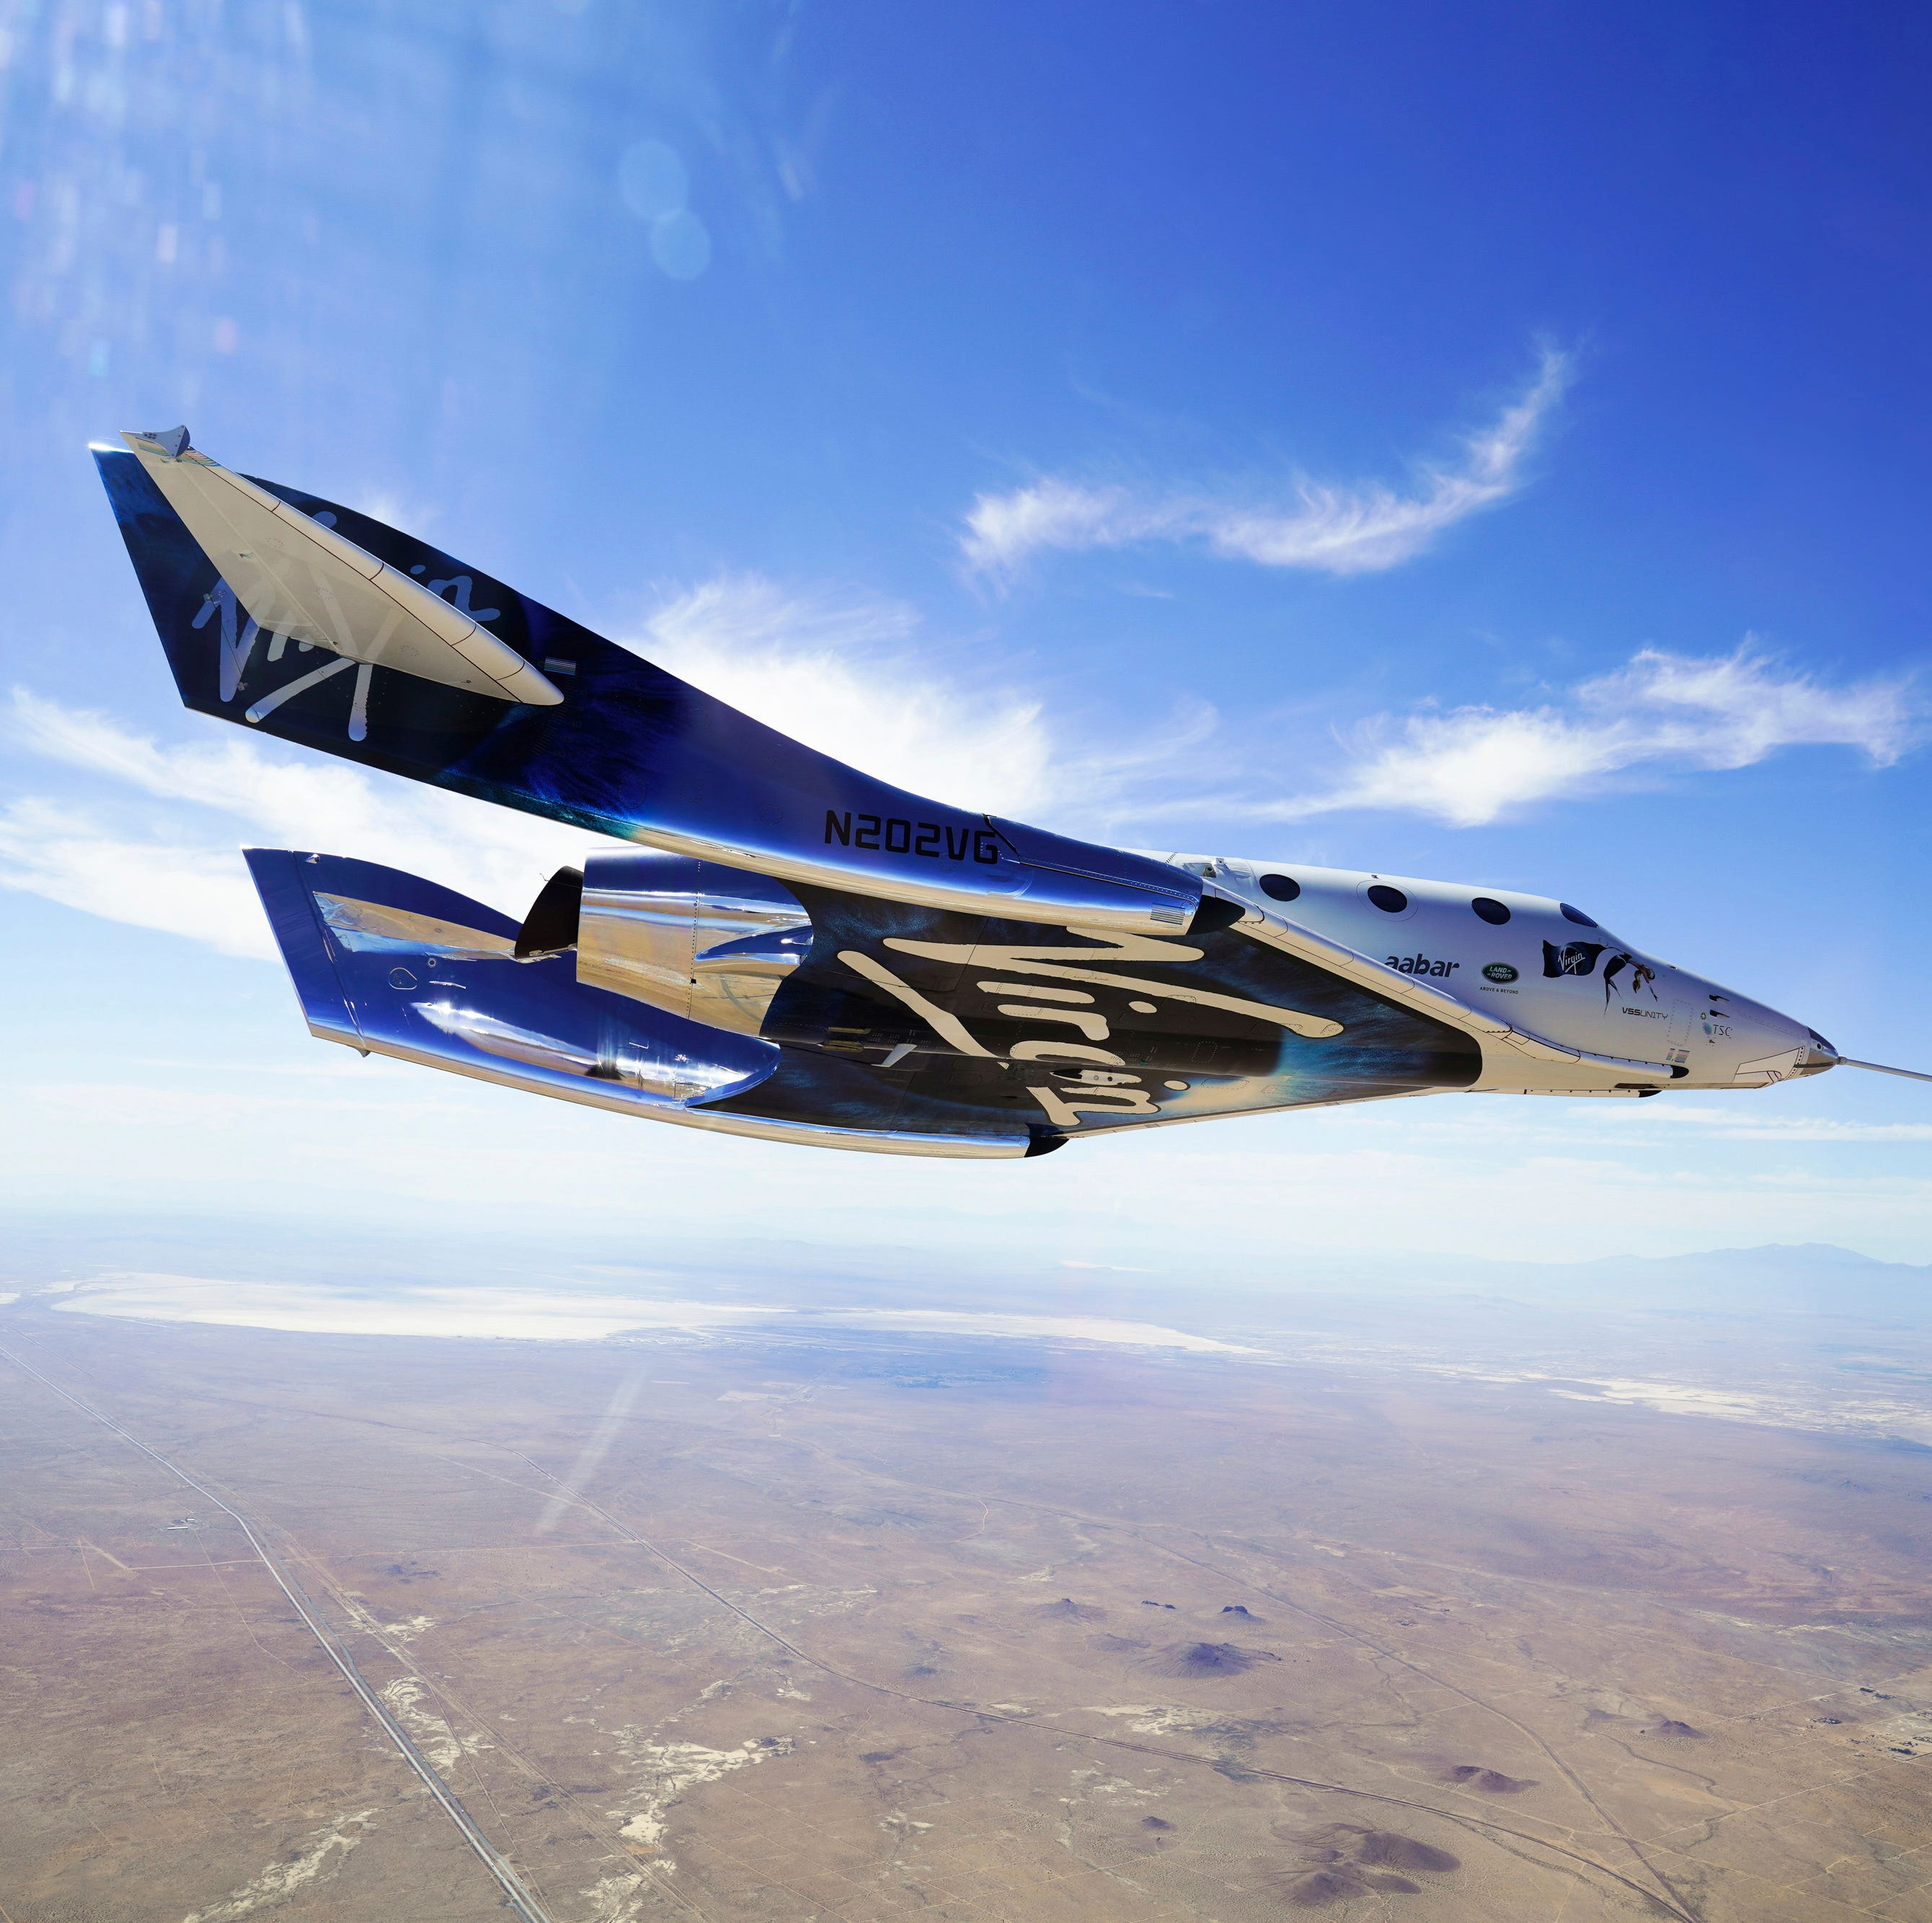 Virgin Galactic's spacecraft reached space during test flight